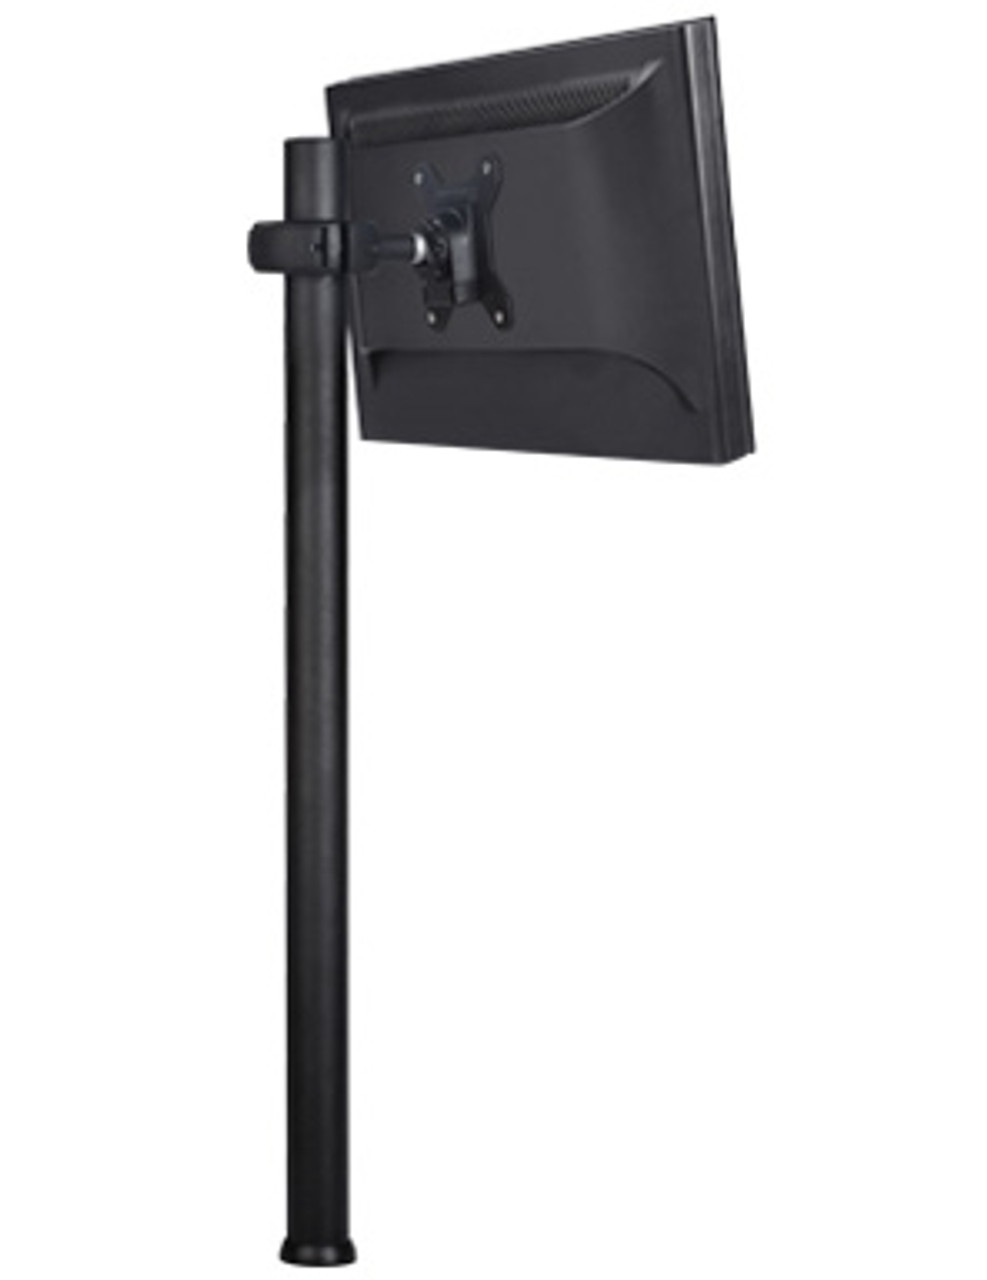 Product image for Atdec Spacedec Display Donut Pole 750mm Black | CX Computer Superstore